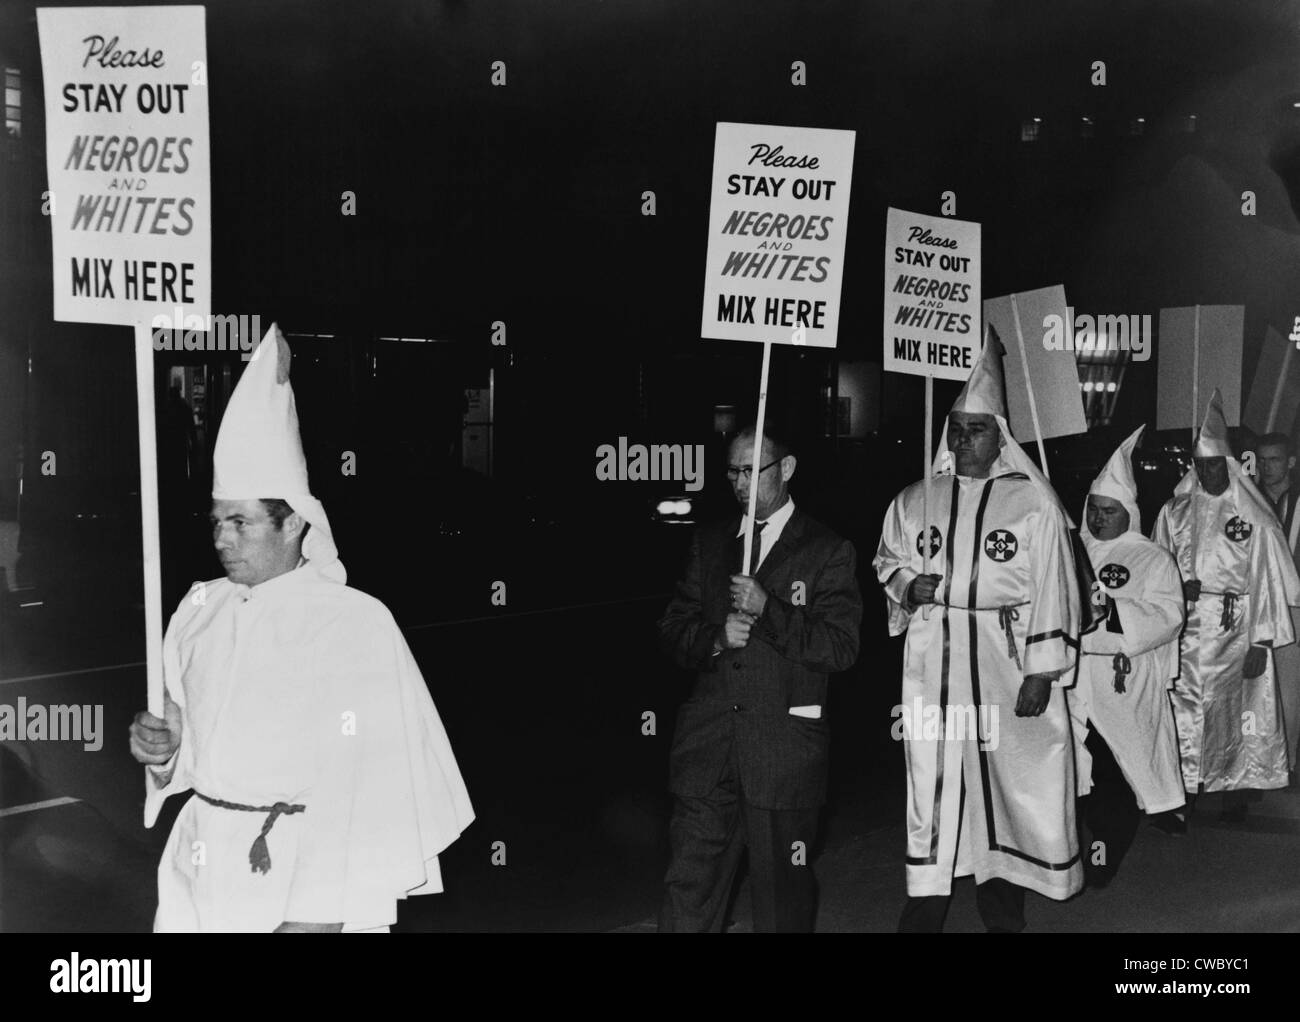 ku klux klan a 20th century The ku klux klan is a hate group it was started in the southern united states on 3 march 1865 ku klux klan in the twentieth century new georgia encyclopedia.